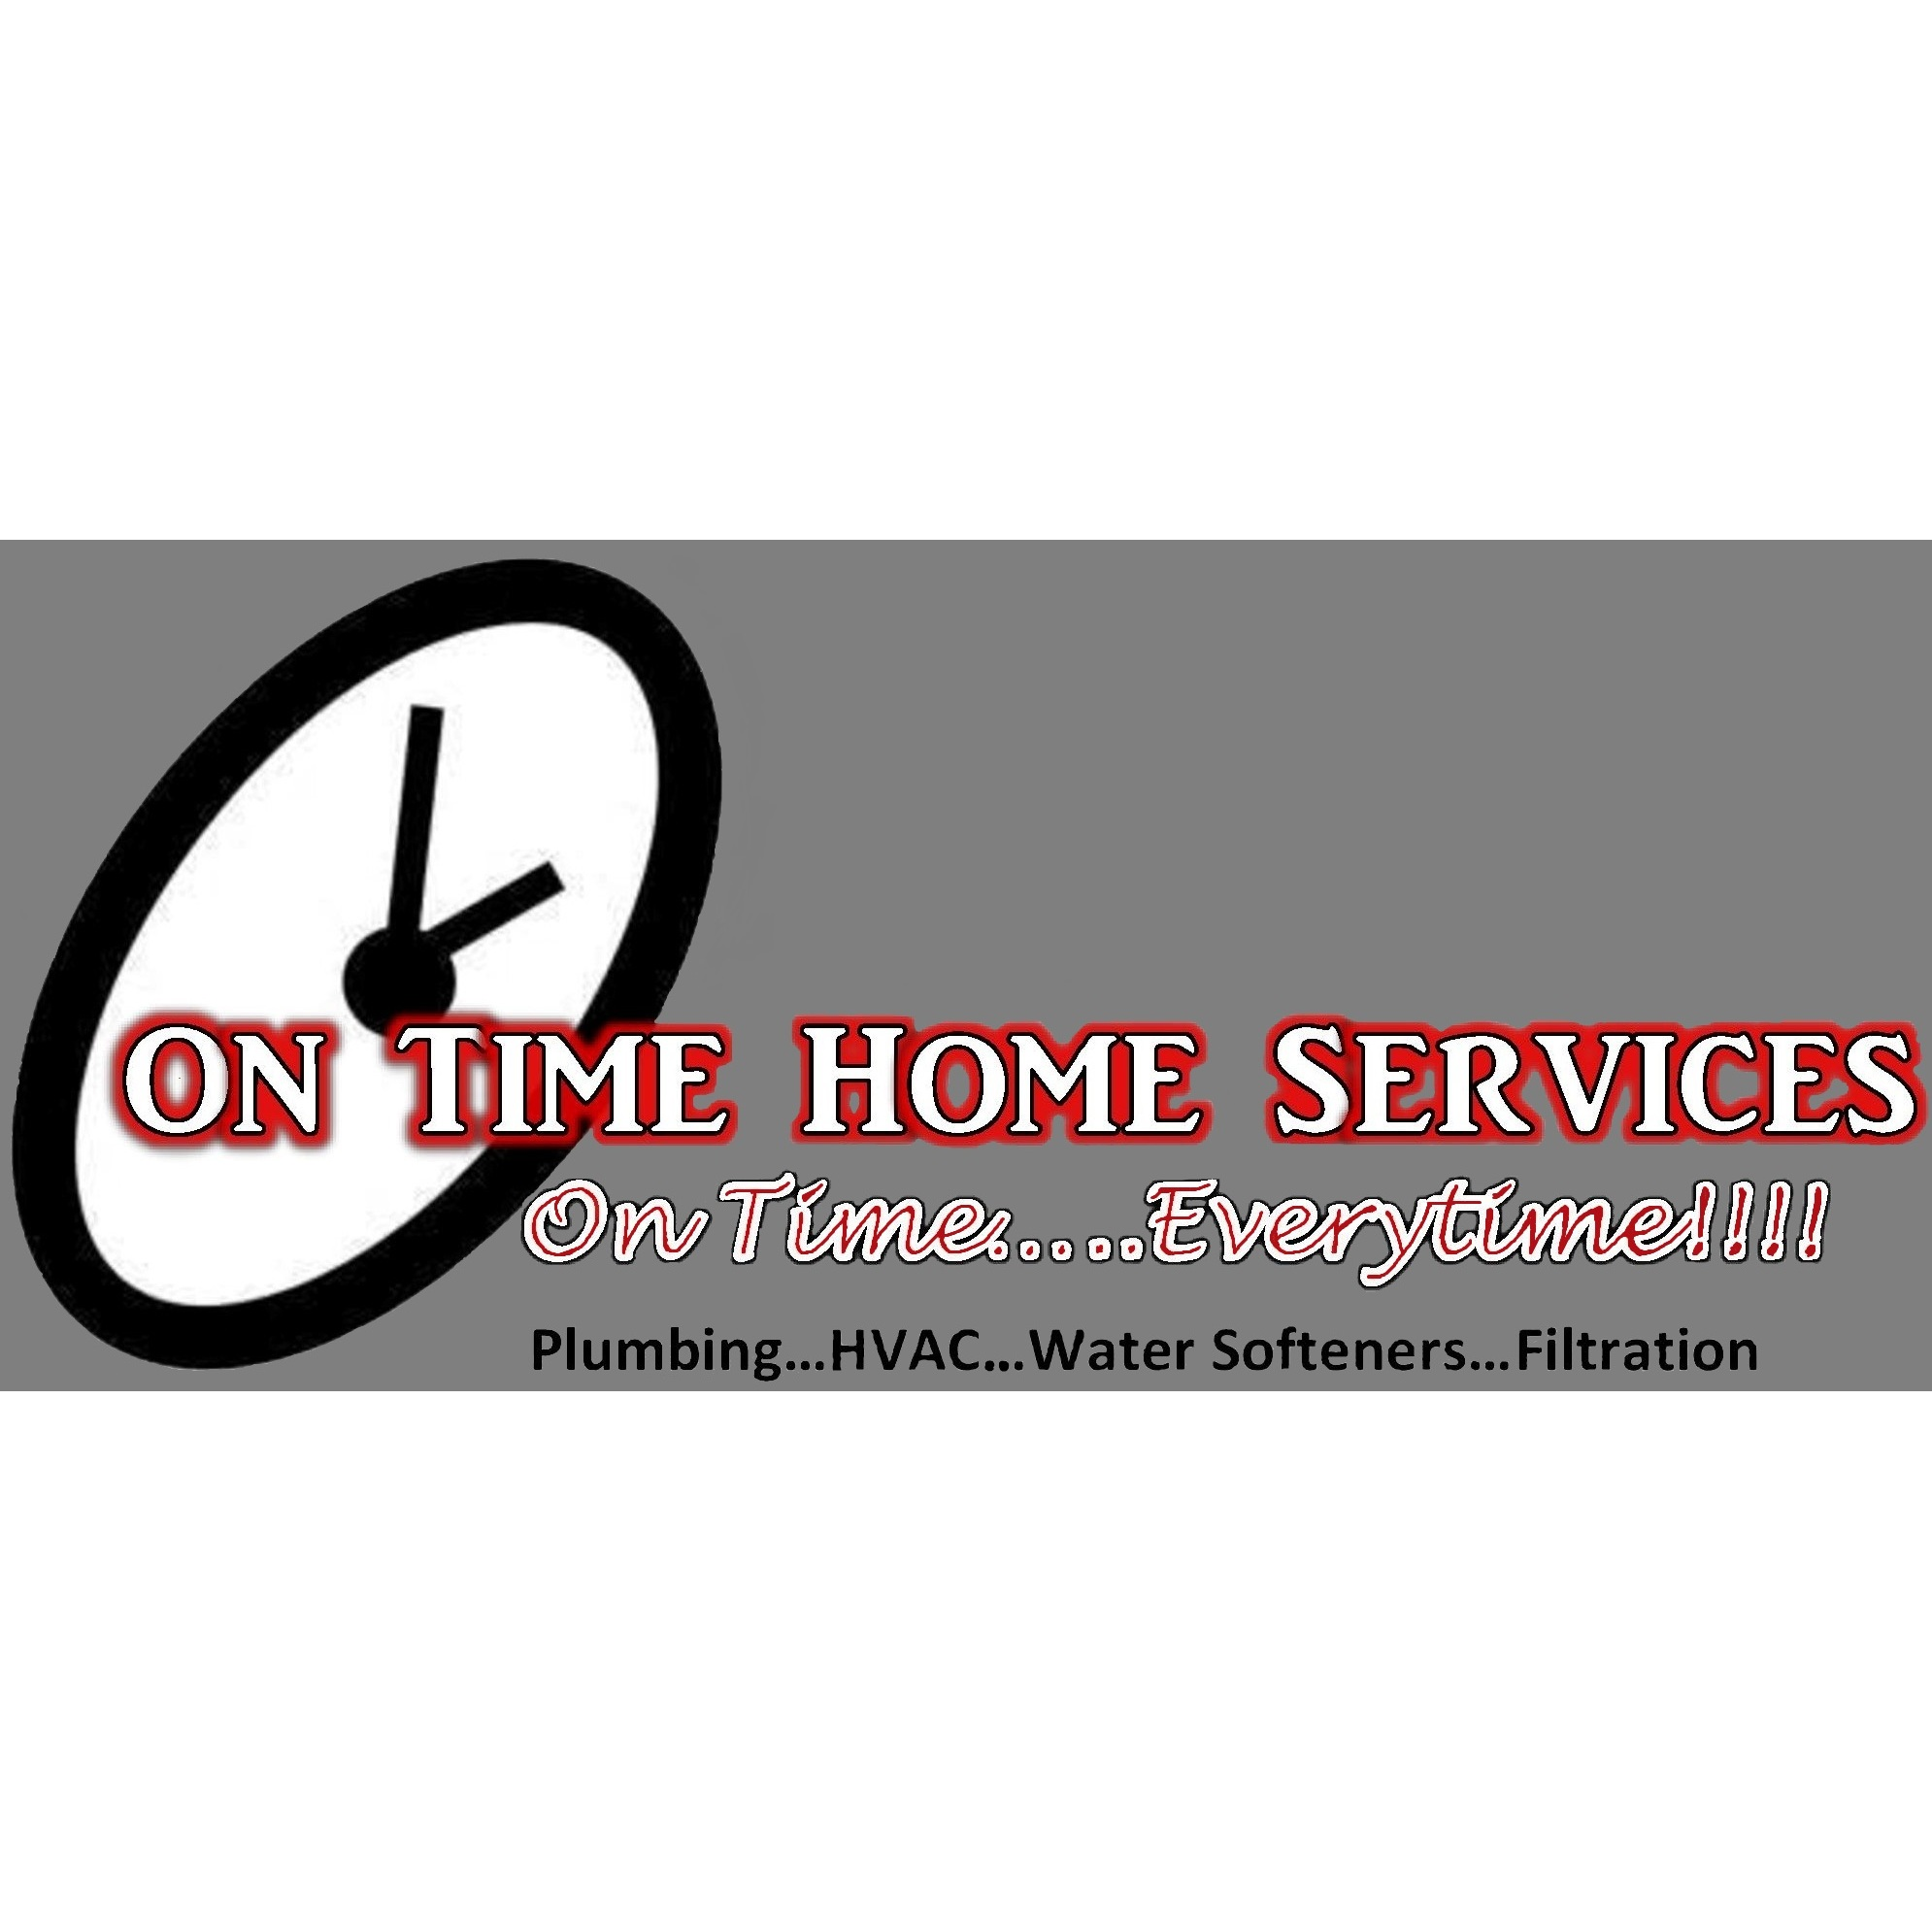 On Time Home Services Inc